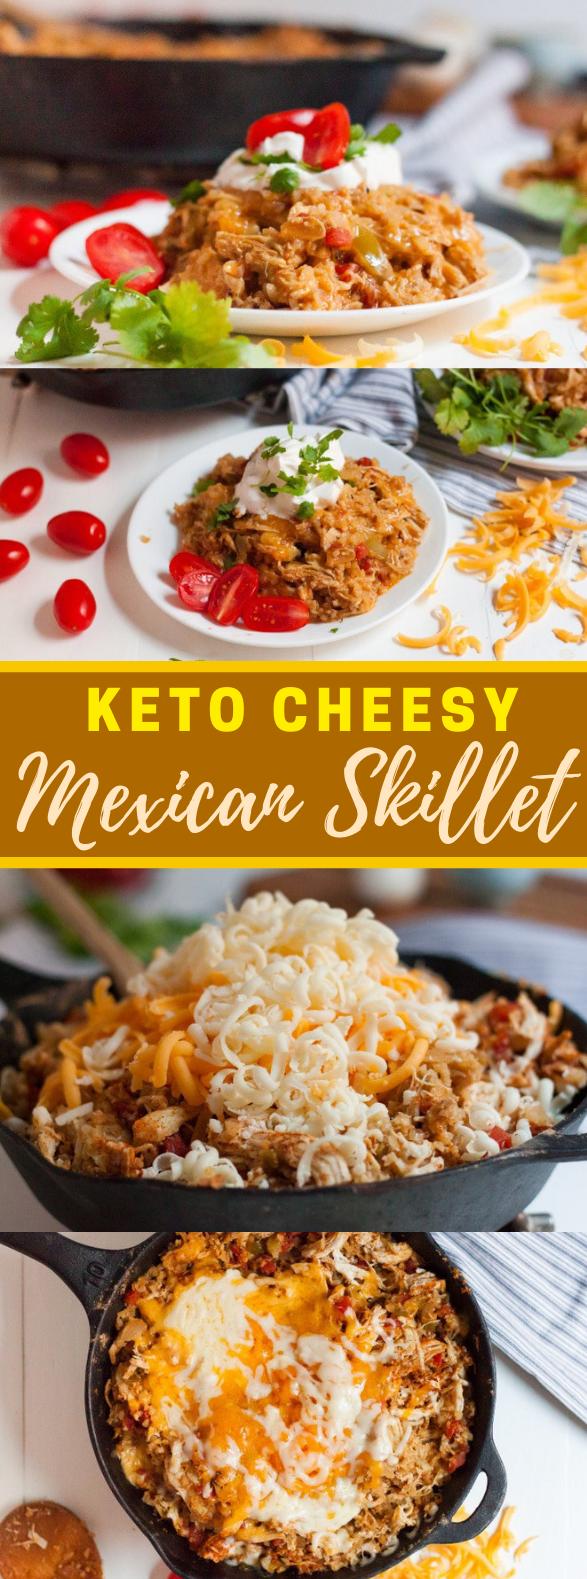 KETO CHEESY MEXICAN SKILLET CHICKEN #healthy #ketodiet